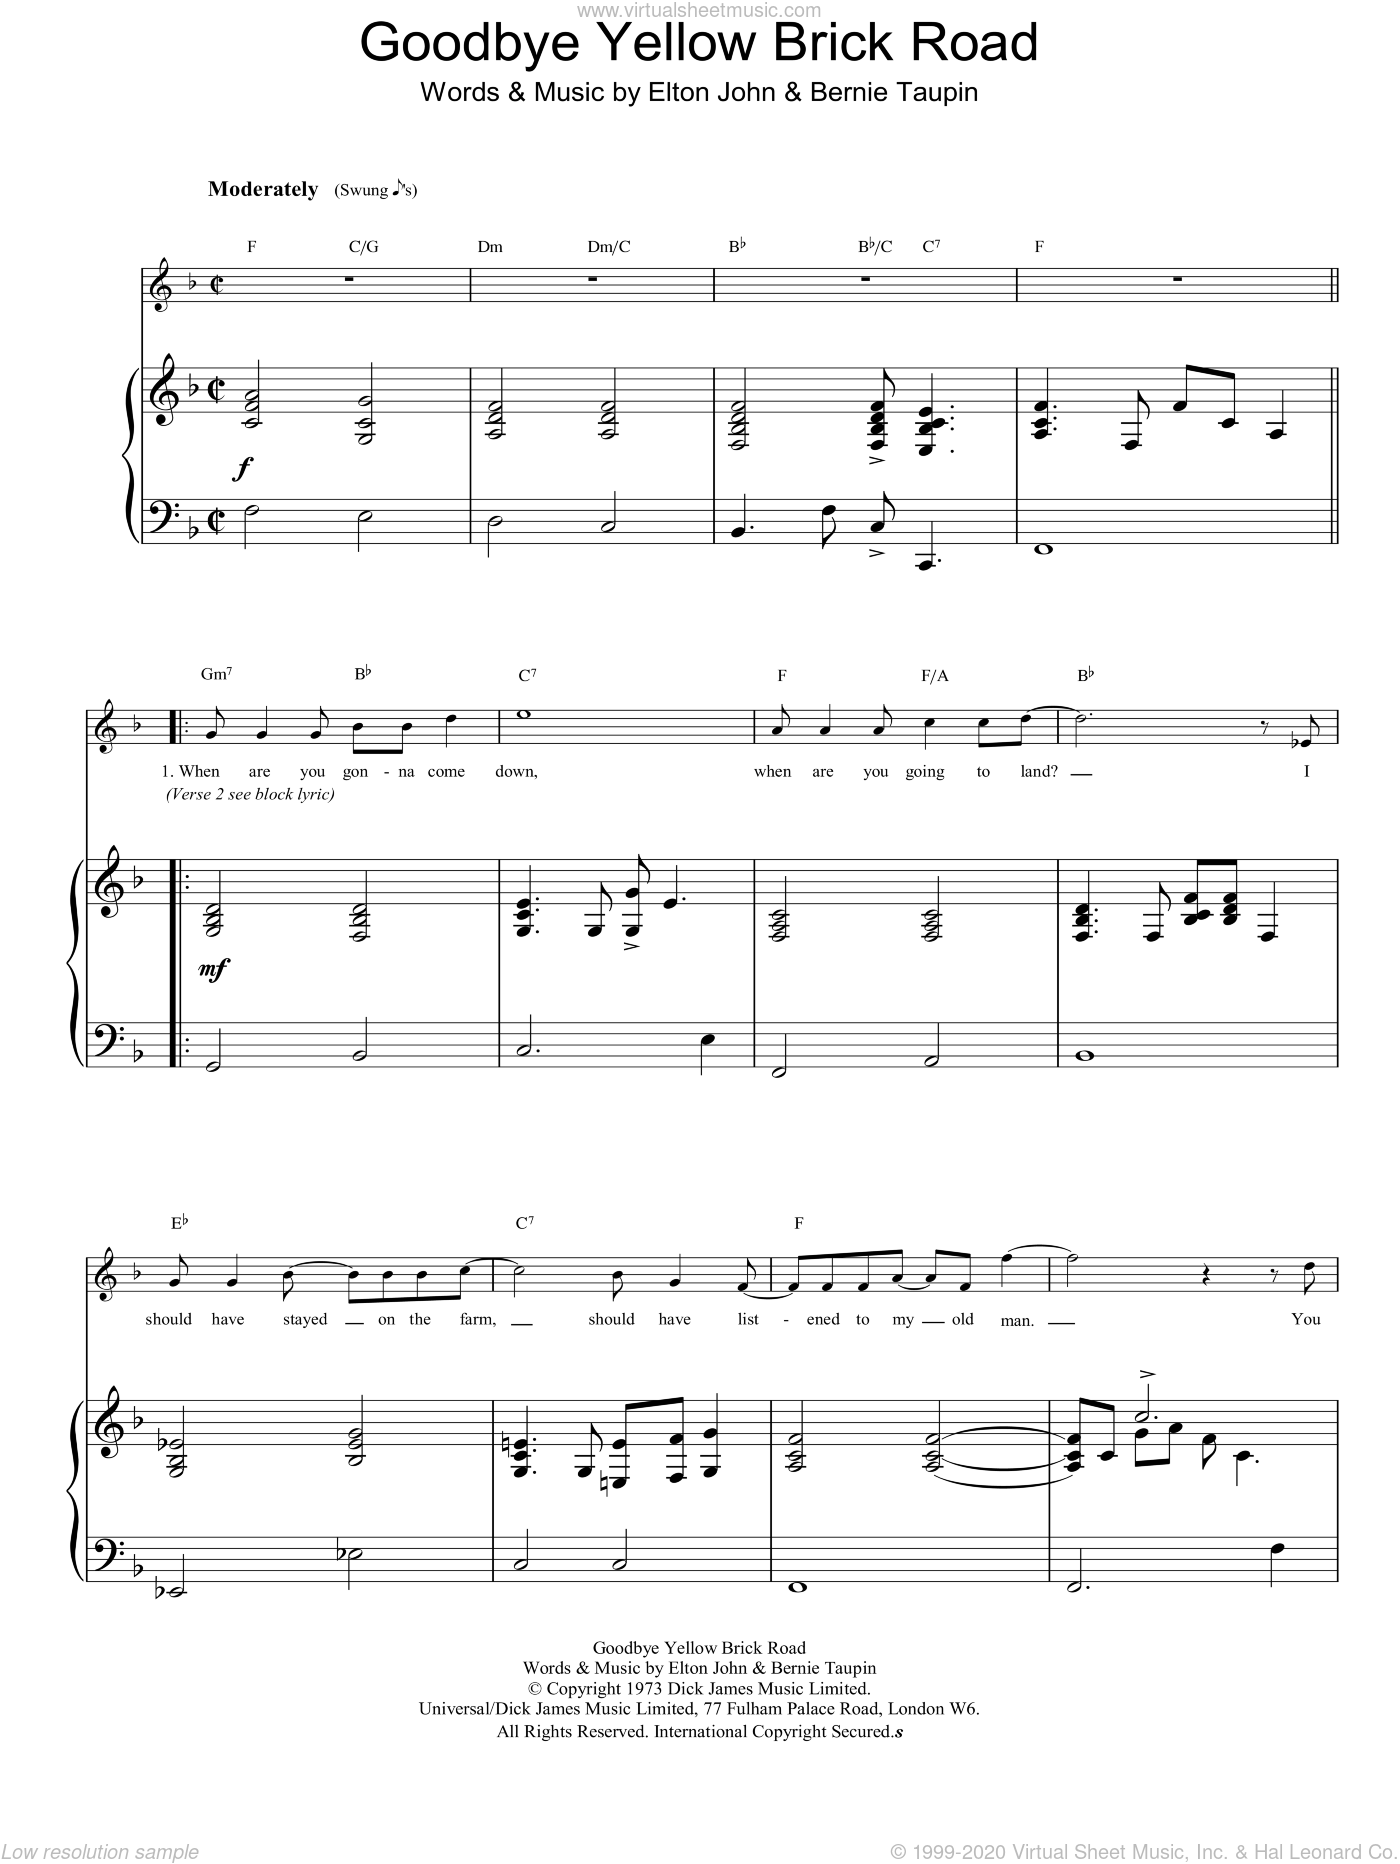 Goodbye Yellow Brick Road sheet music for voice, piano or guitar by Elton John